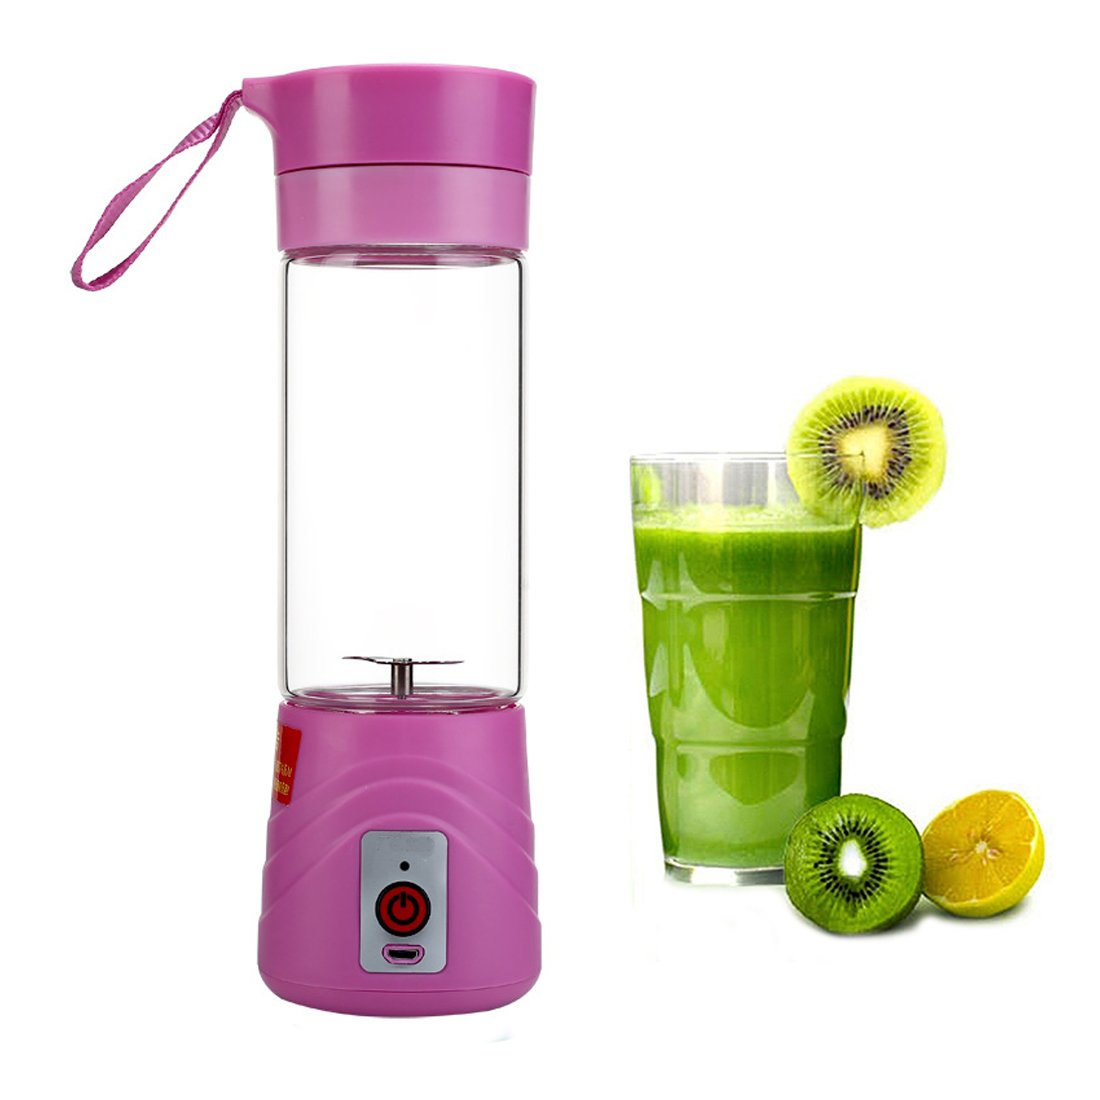 Fivebop USB Fruit Juicer Cup Mixing Machine, Portable Personal Size Eletric Rechargeable Mixer, Blender, Water Bottle 380ml with USB Charger Cable (Blue)